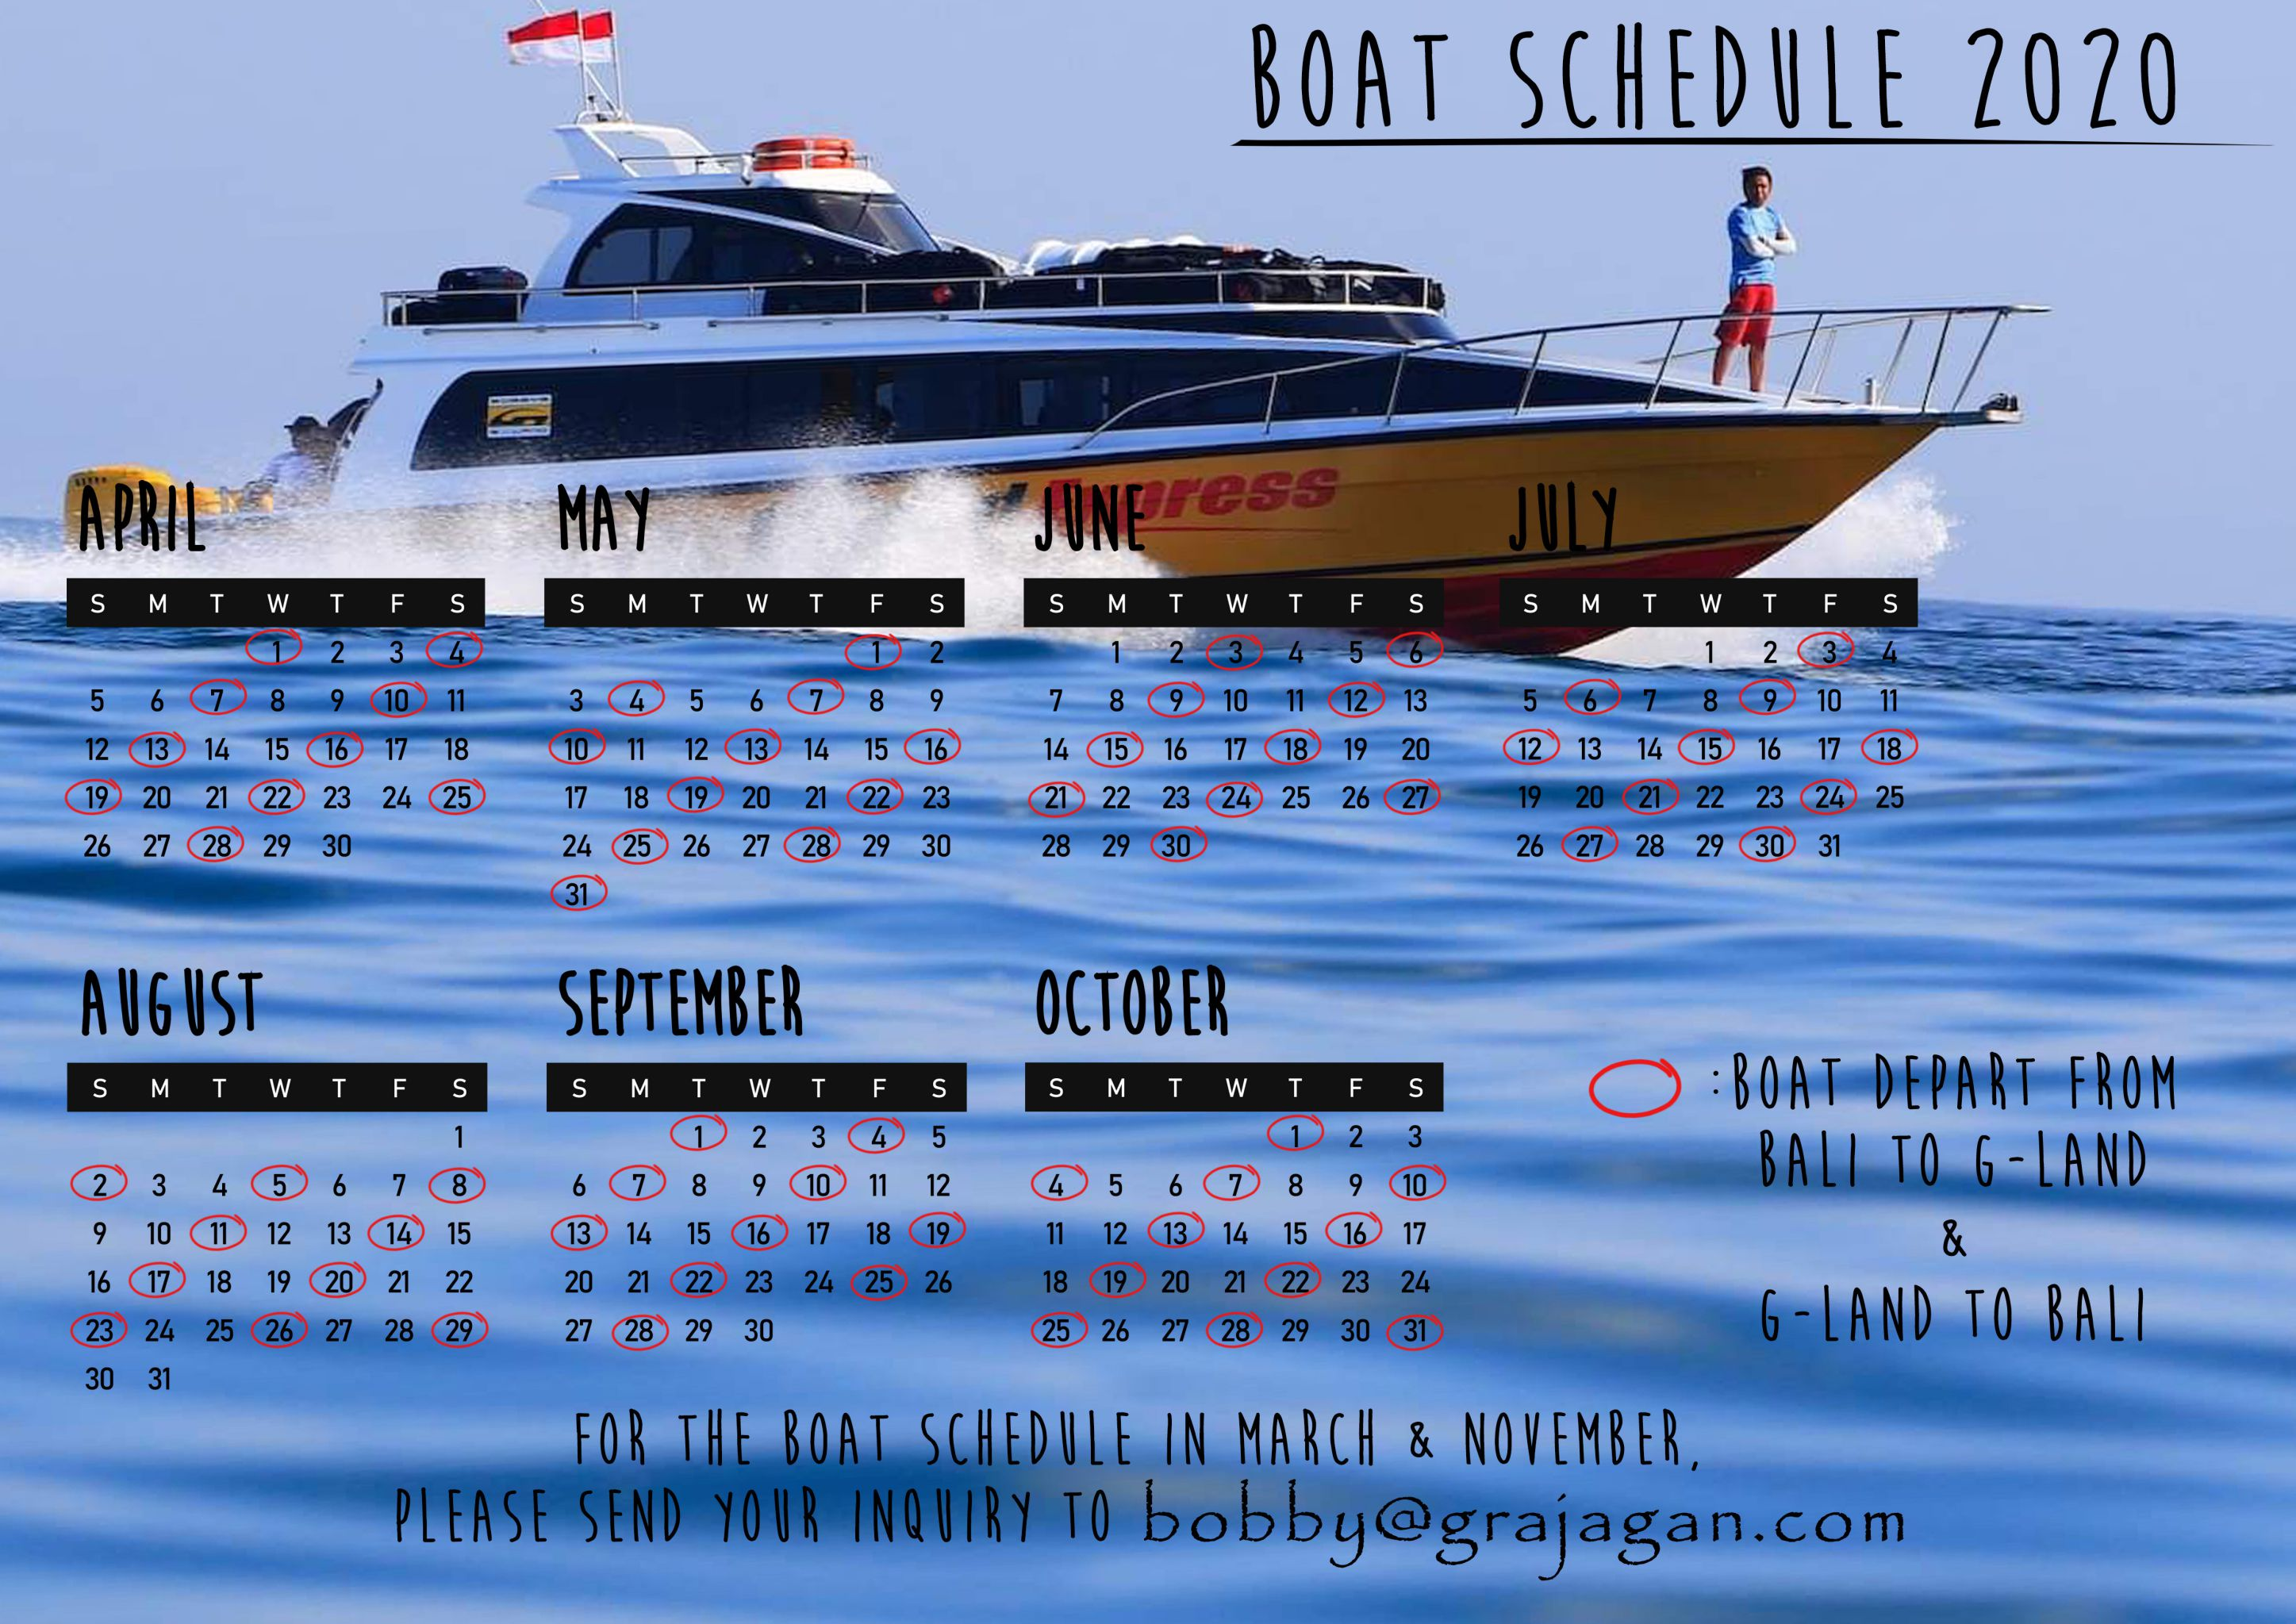 G-LAND BOBBY'S SURF CAMP BOAT SCHEDULE 2020